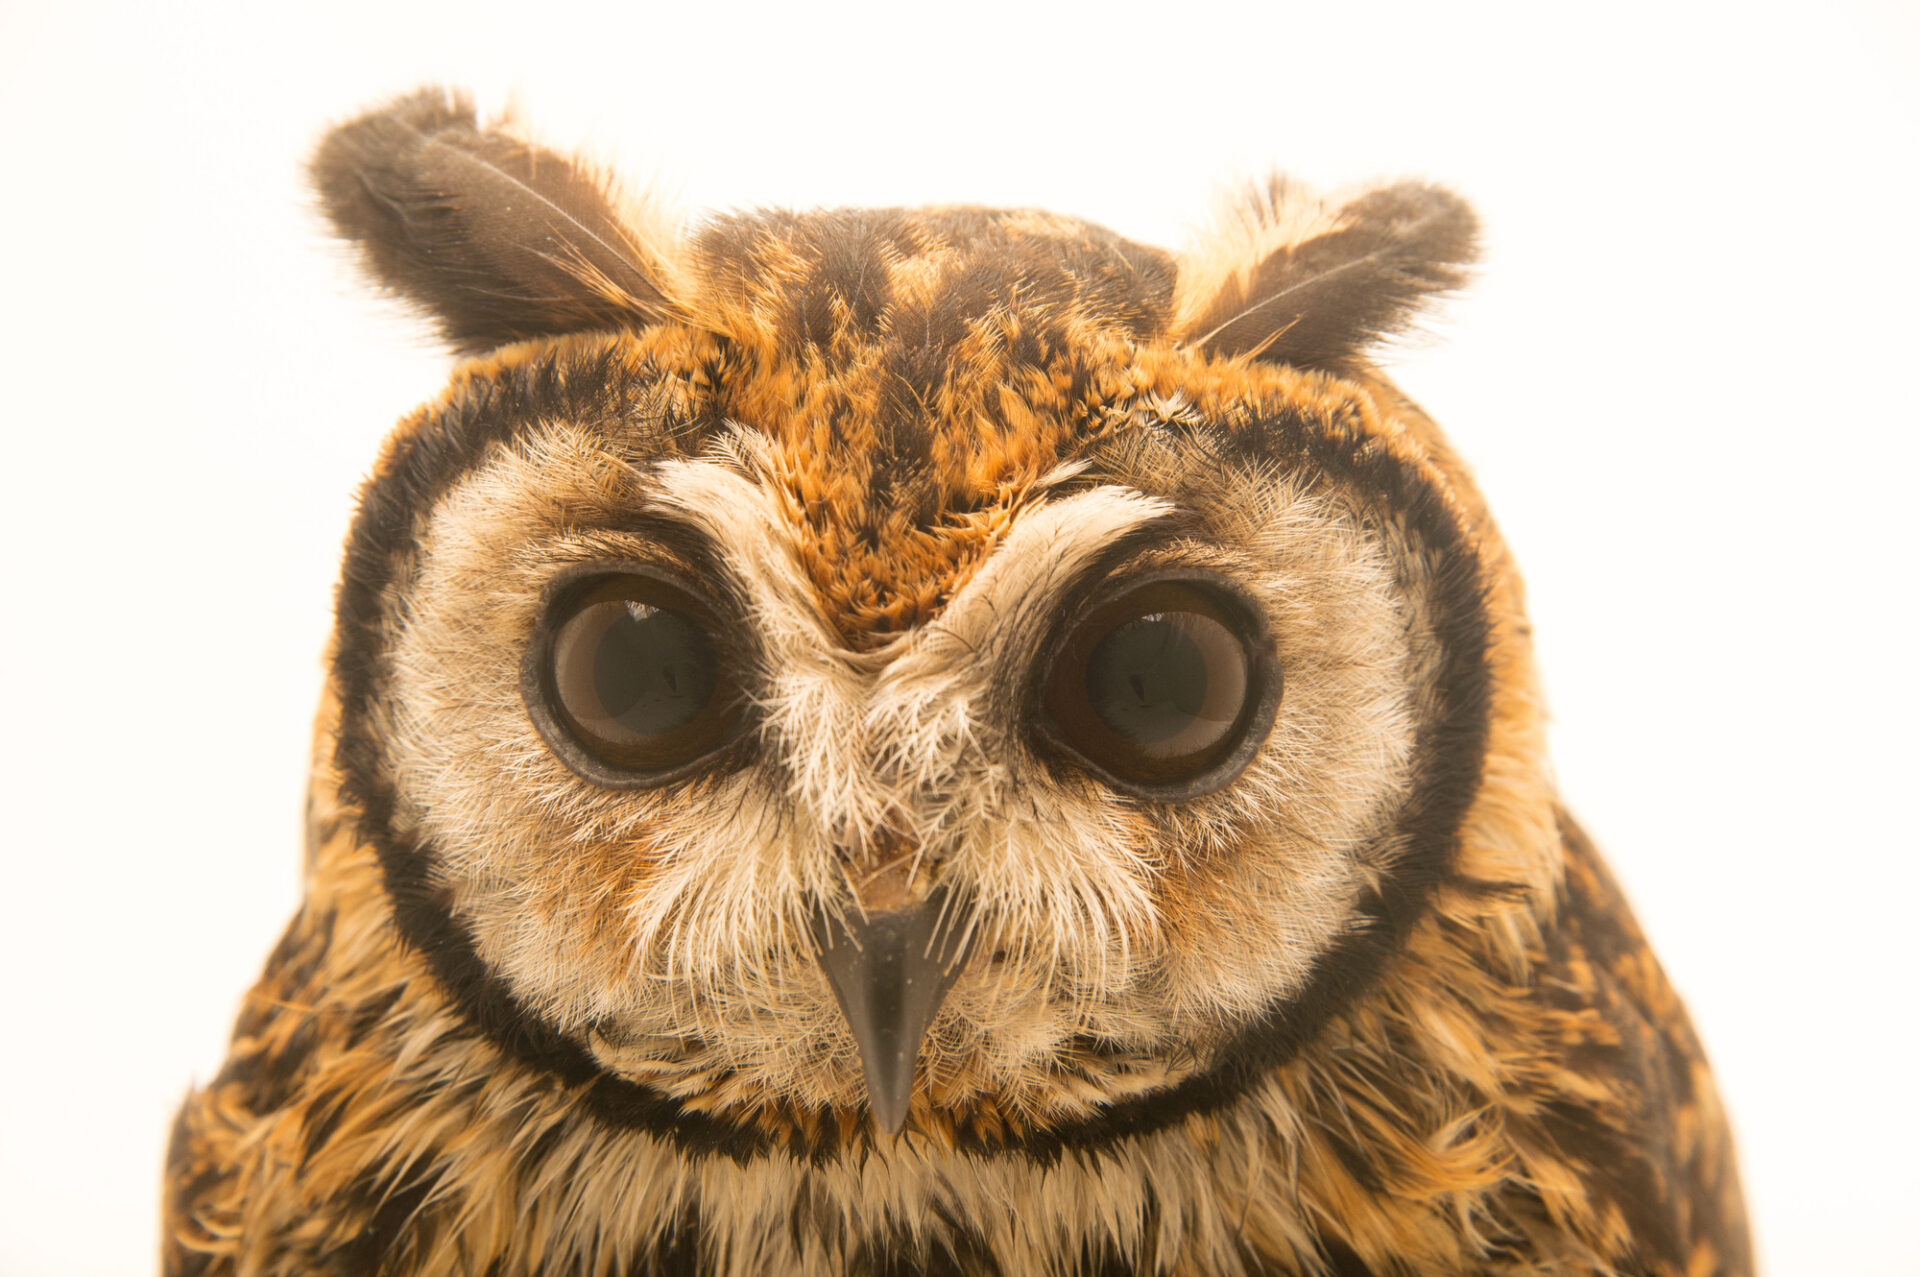 Photo: A striped owl (Asio clamator forbesi) at the Nispero Zoo.